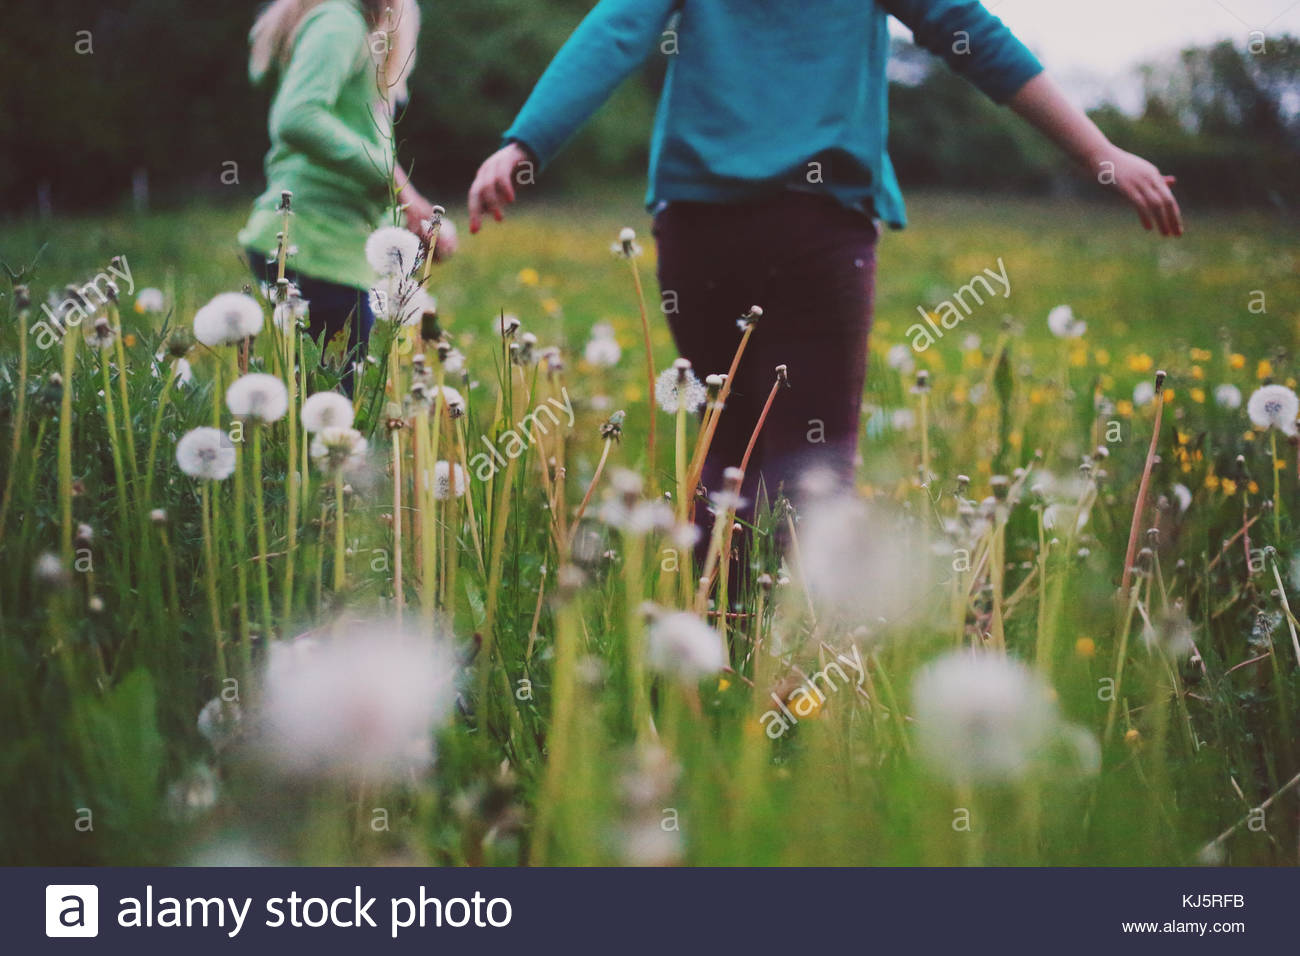 Children in a field with dandelions - Stock Image